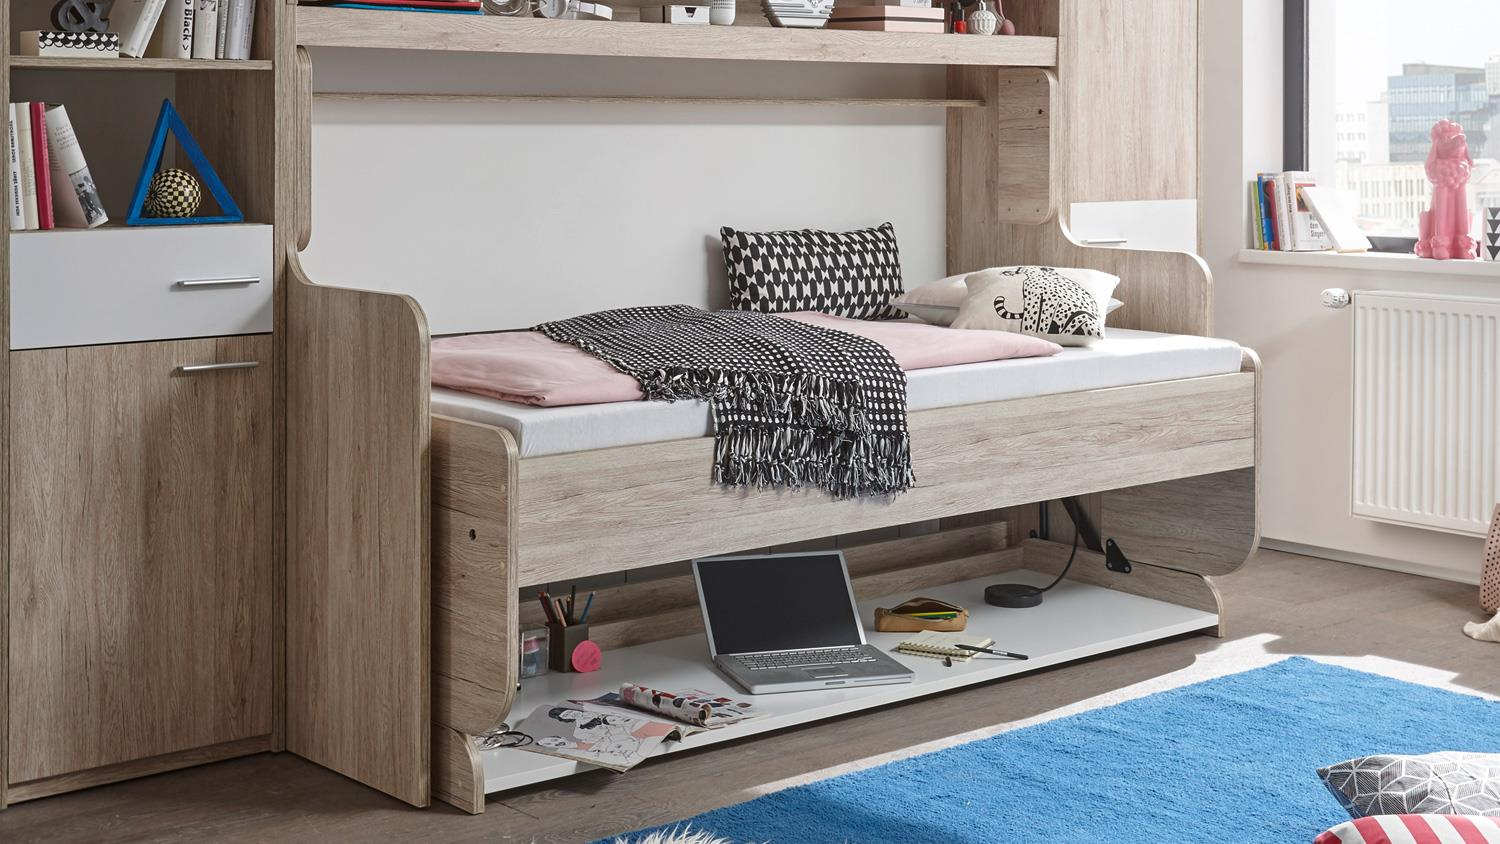 funktionsbett dakota klappbett schreibtisch eiche san remo wei 90x200. Black Bedroom Furniture Sets. Home Design Ideas